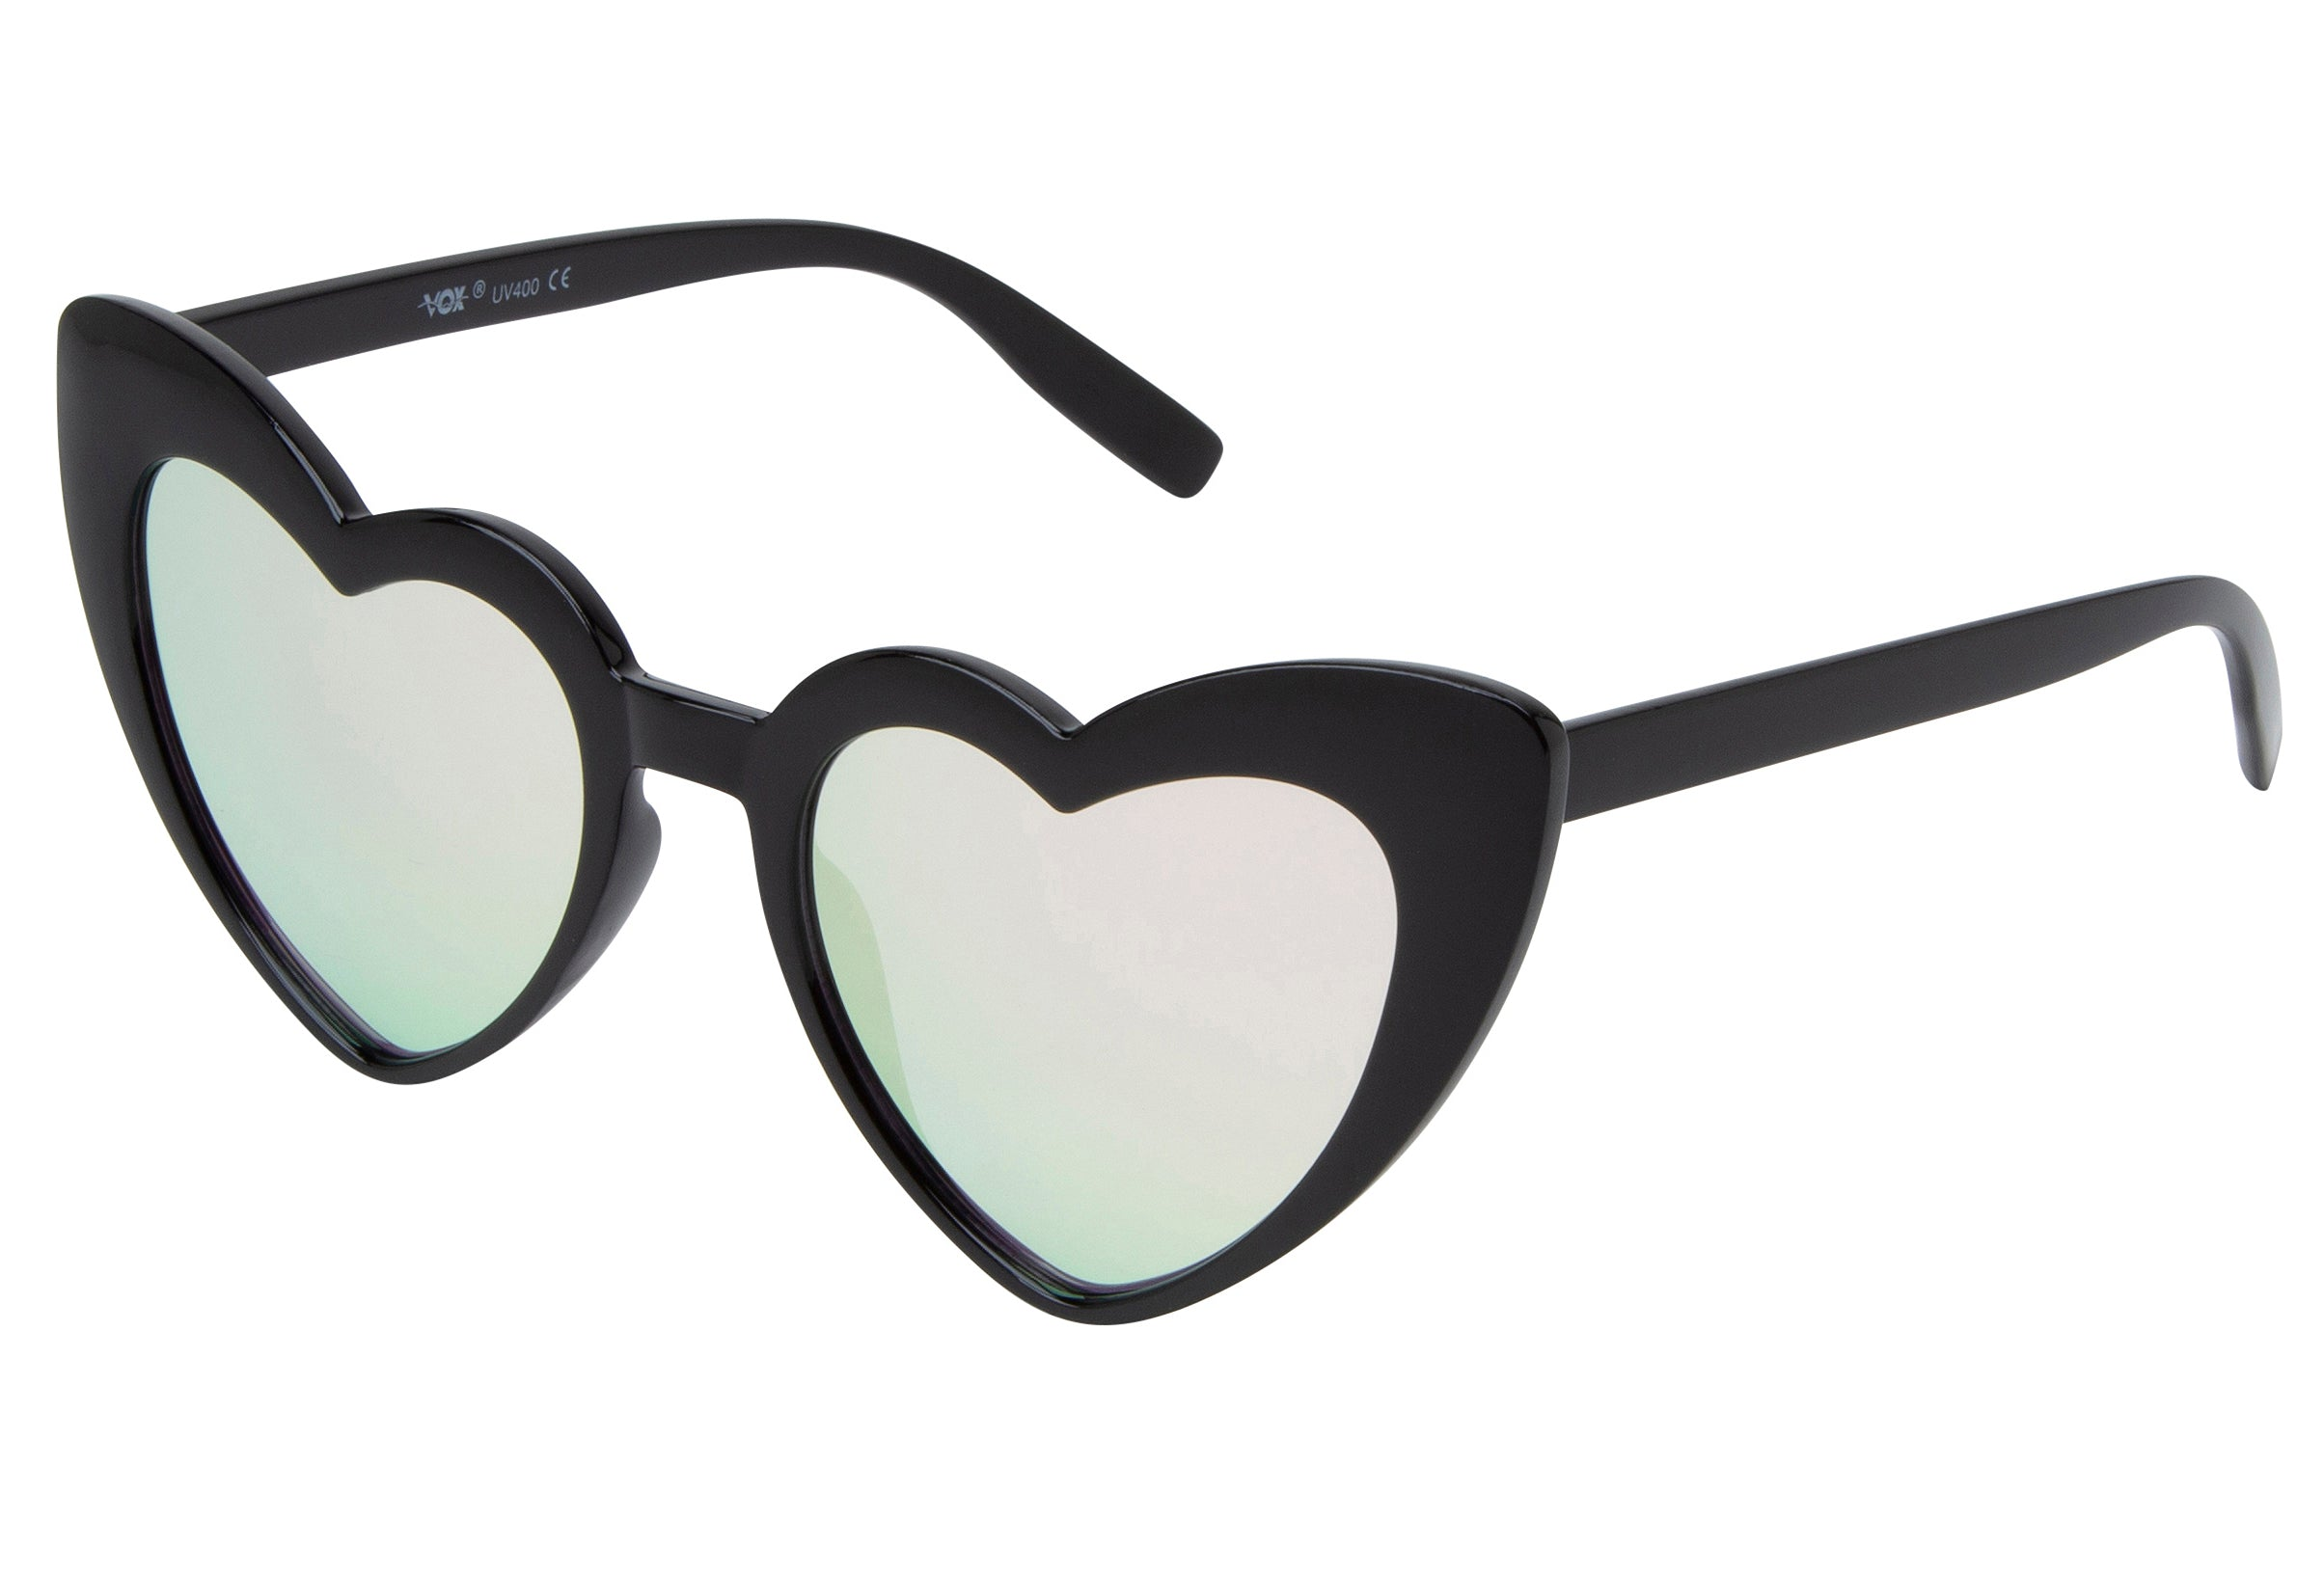 66111 - Vox Women's PC Fashion Sunglasses